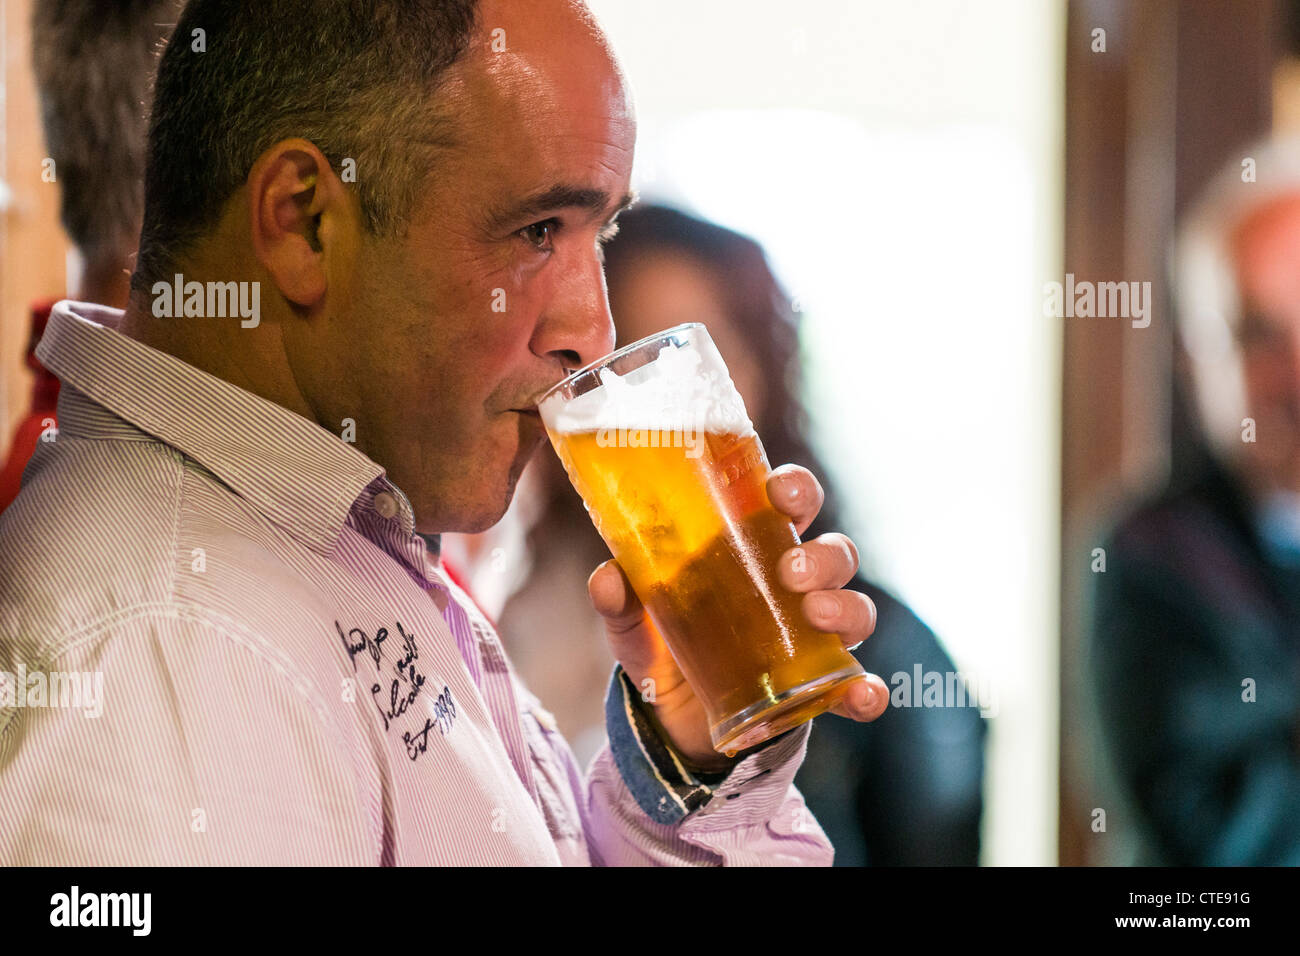 a man drinking a pint of lager beer in a pub uk - Stock Image